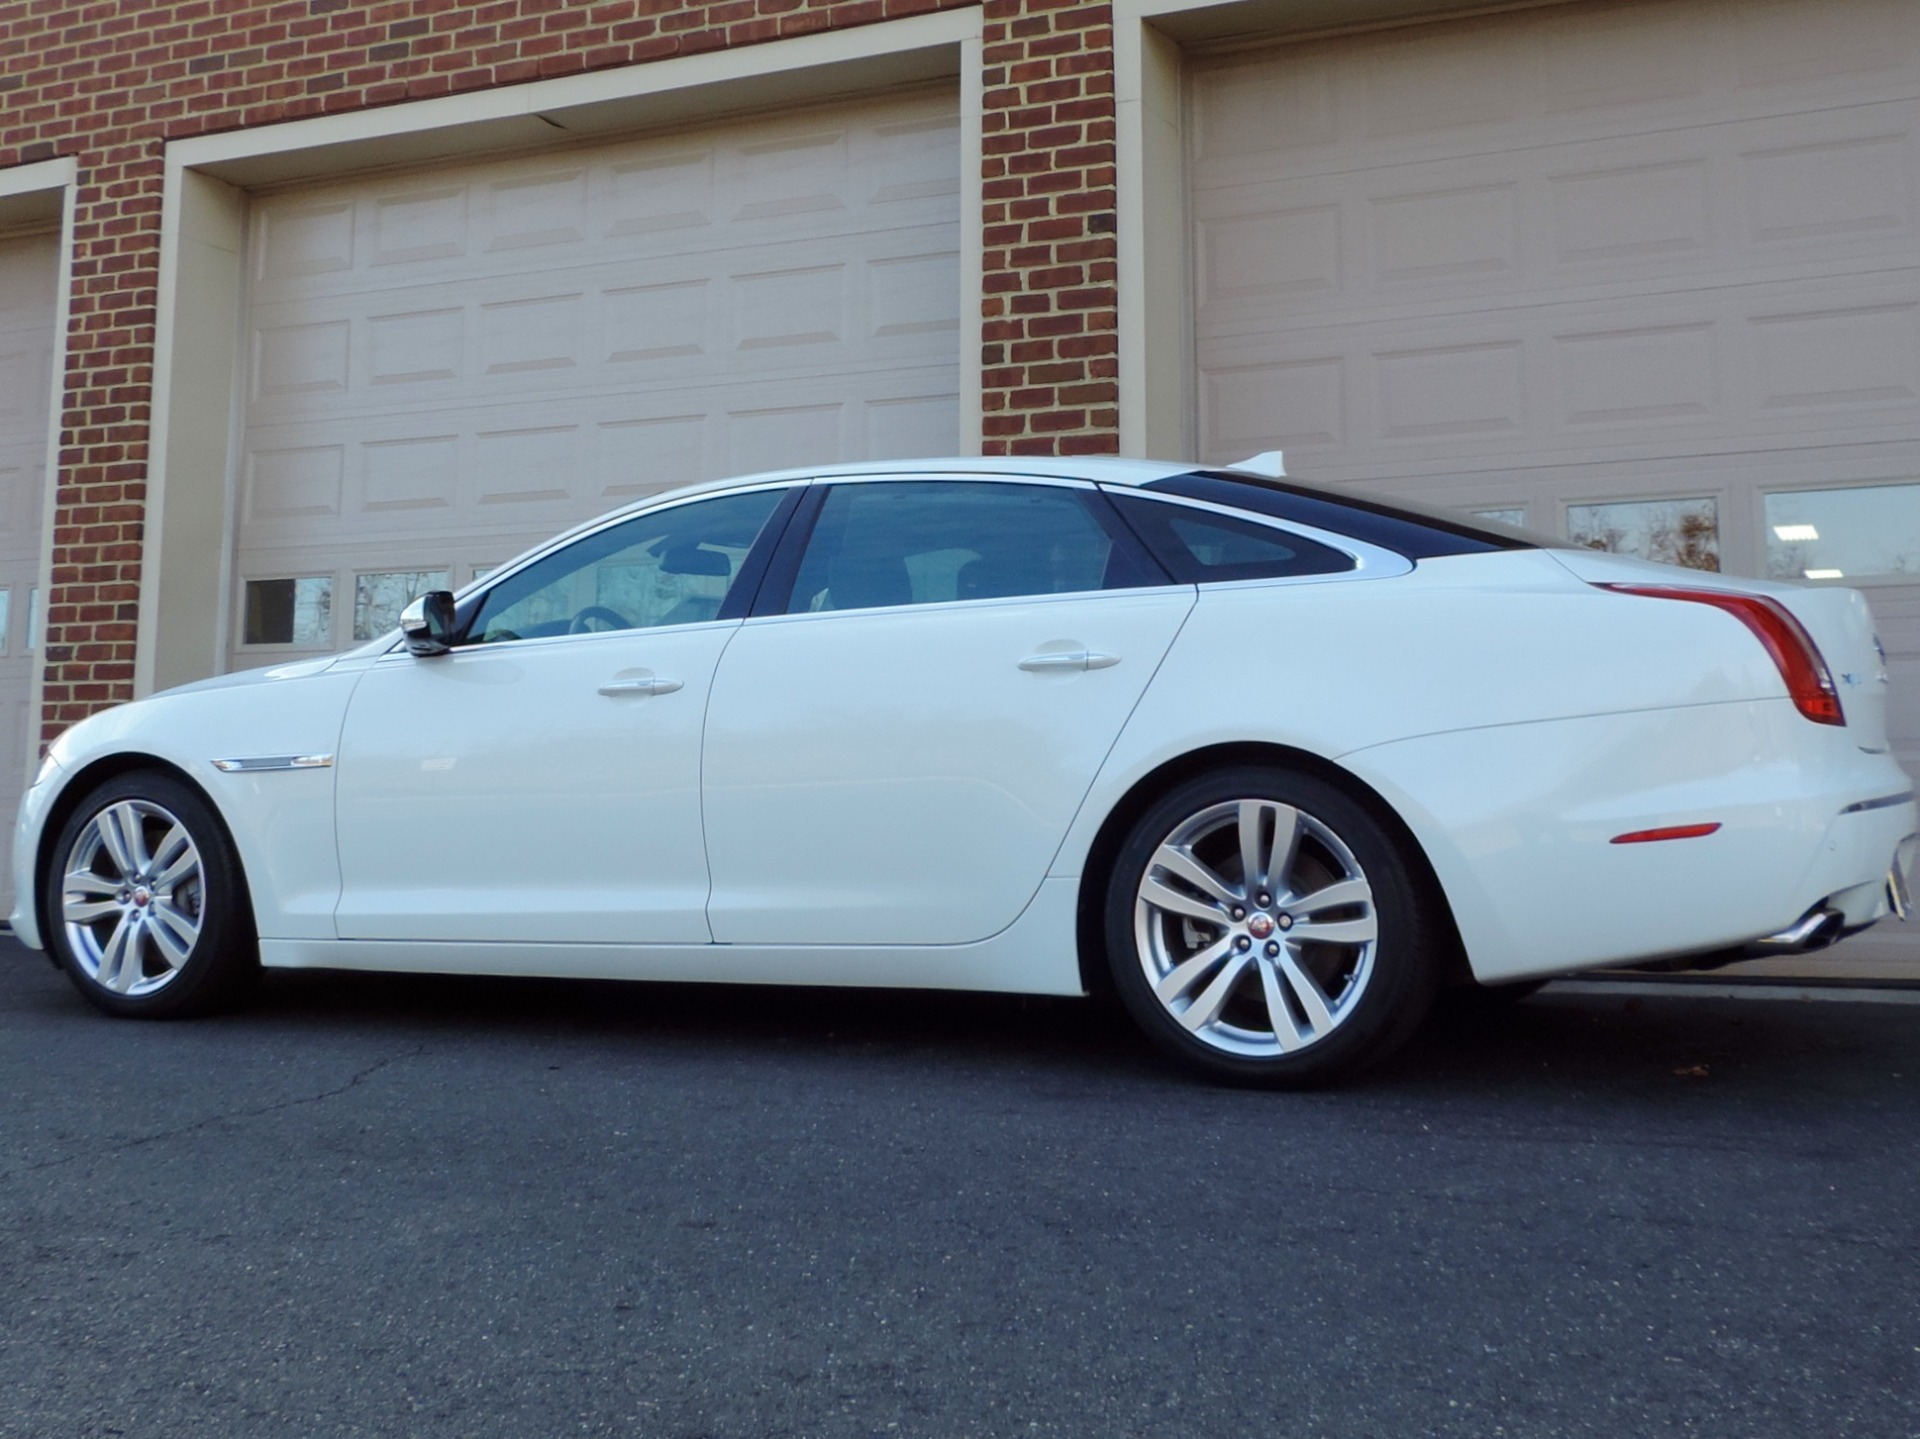 vancouver awd portfolio vehicles autoform jaguar xjl